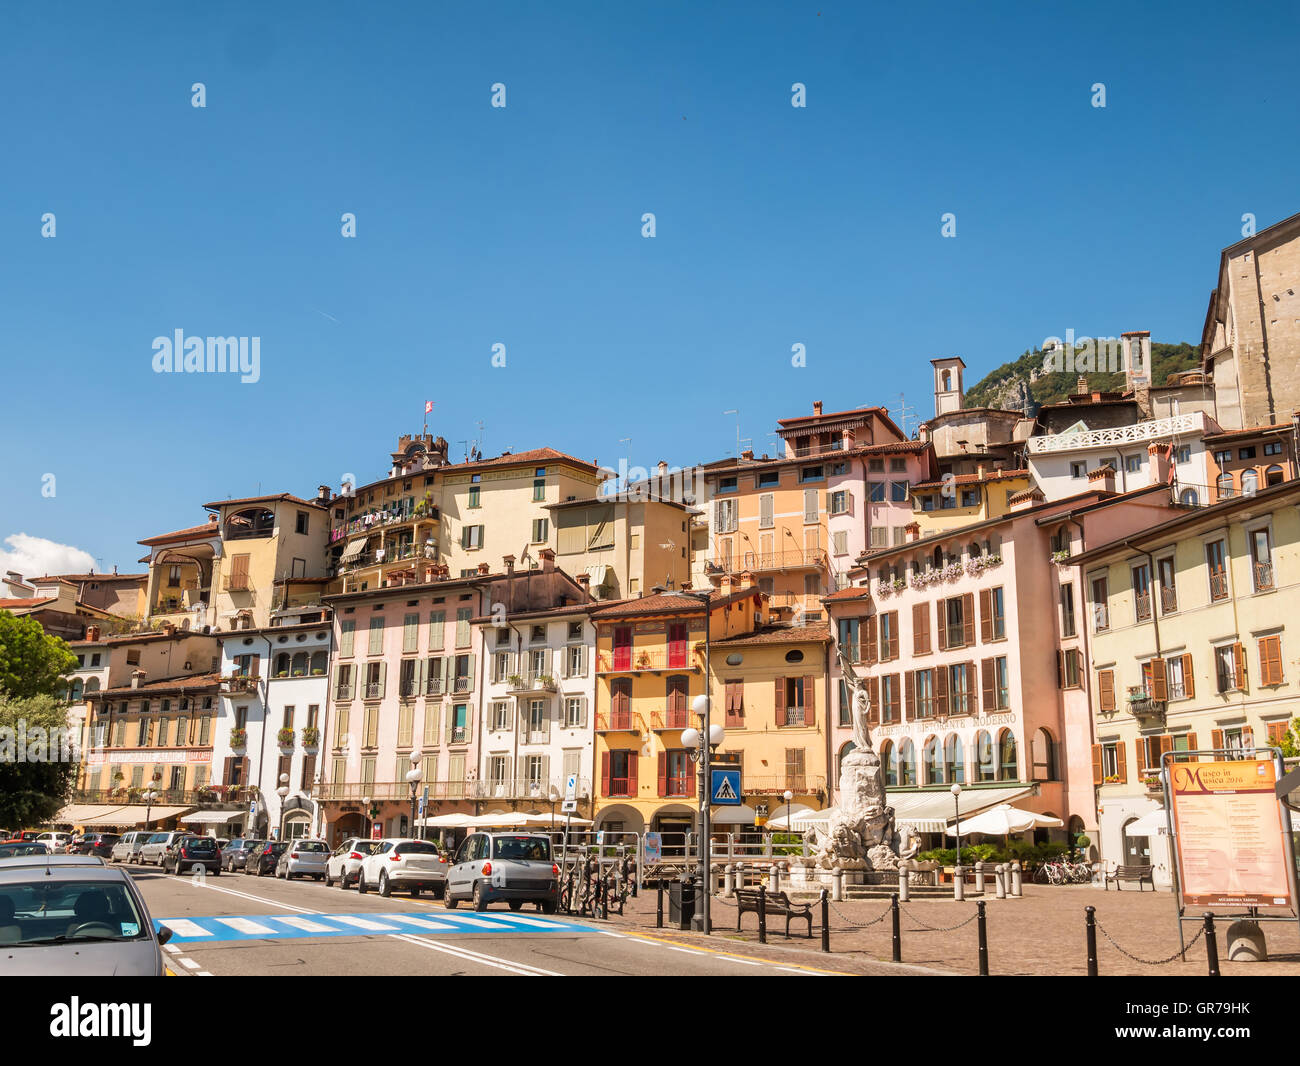 City of Lovere at lake Iseo in Italy - Stock Image